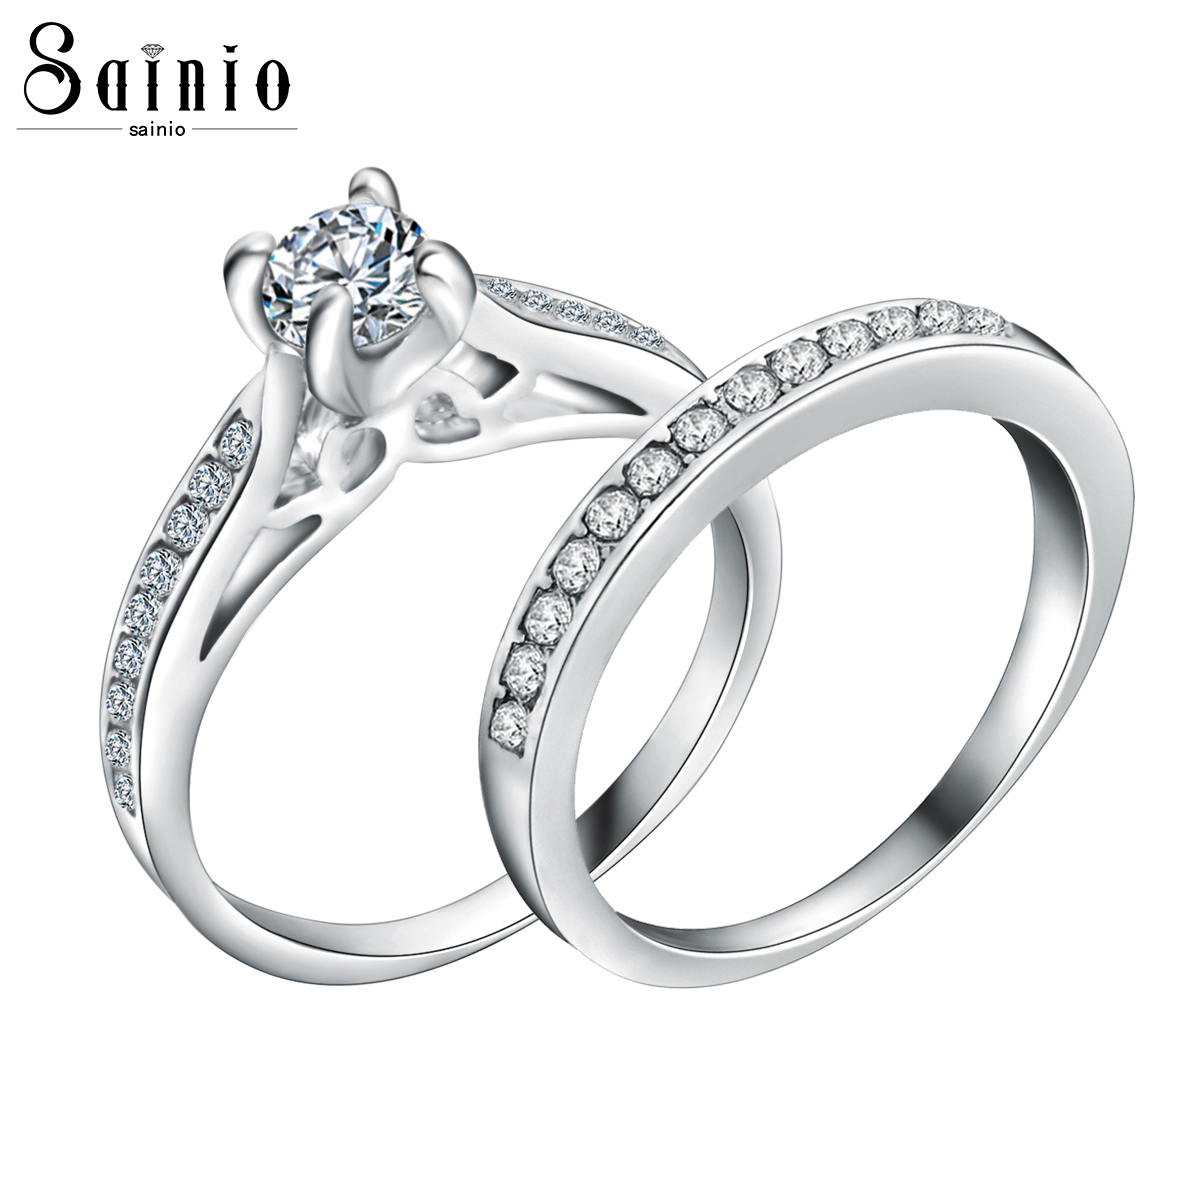 Sainio 2pcs/set Wedding Engagement Rings For Women Men Luxury Classic Crystal Ring Silver Color Lovers CZ Finger Ring Jewelry